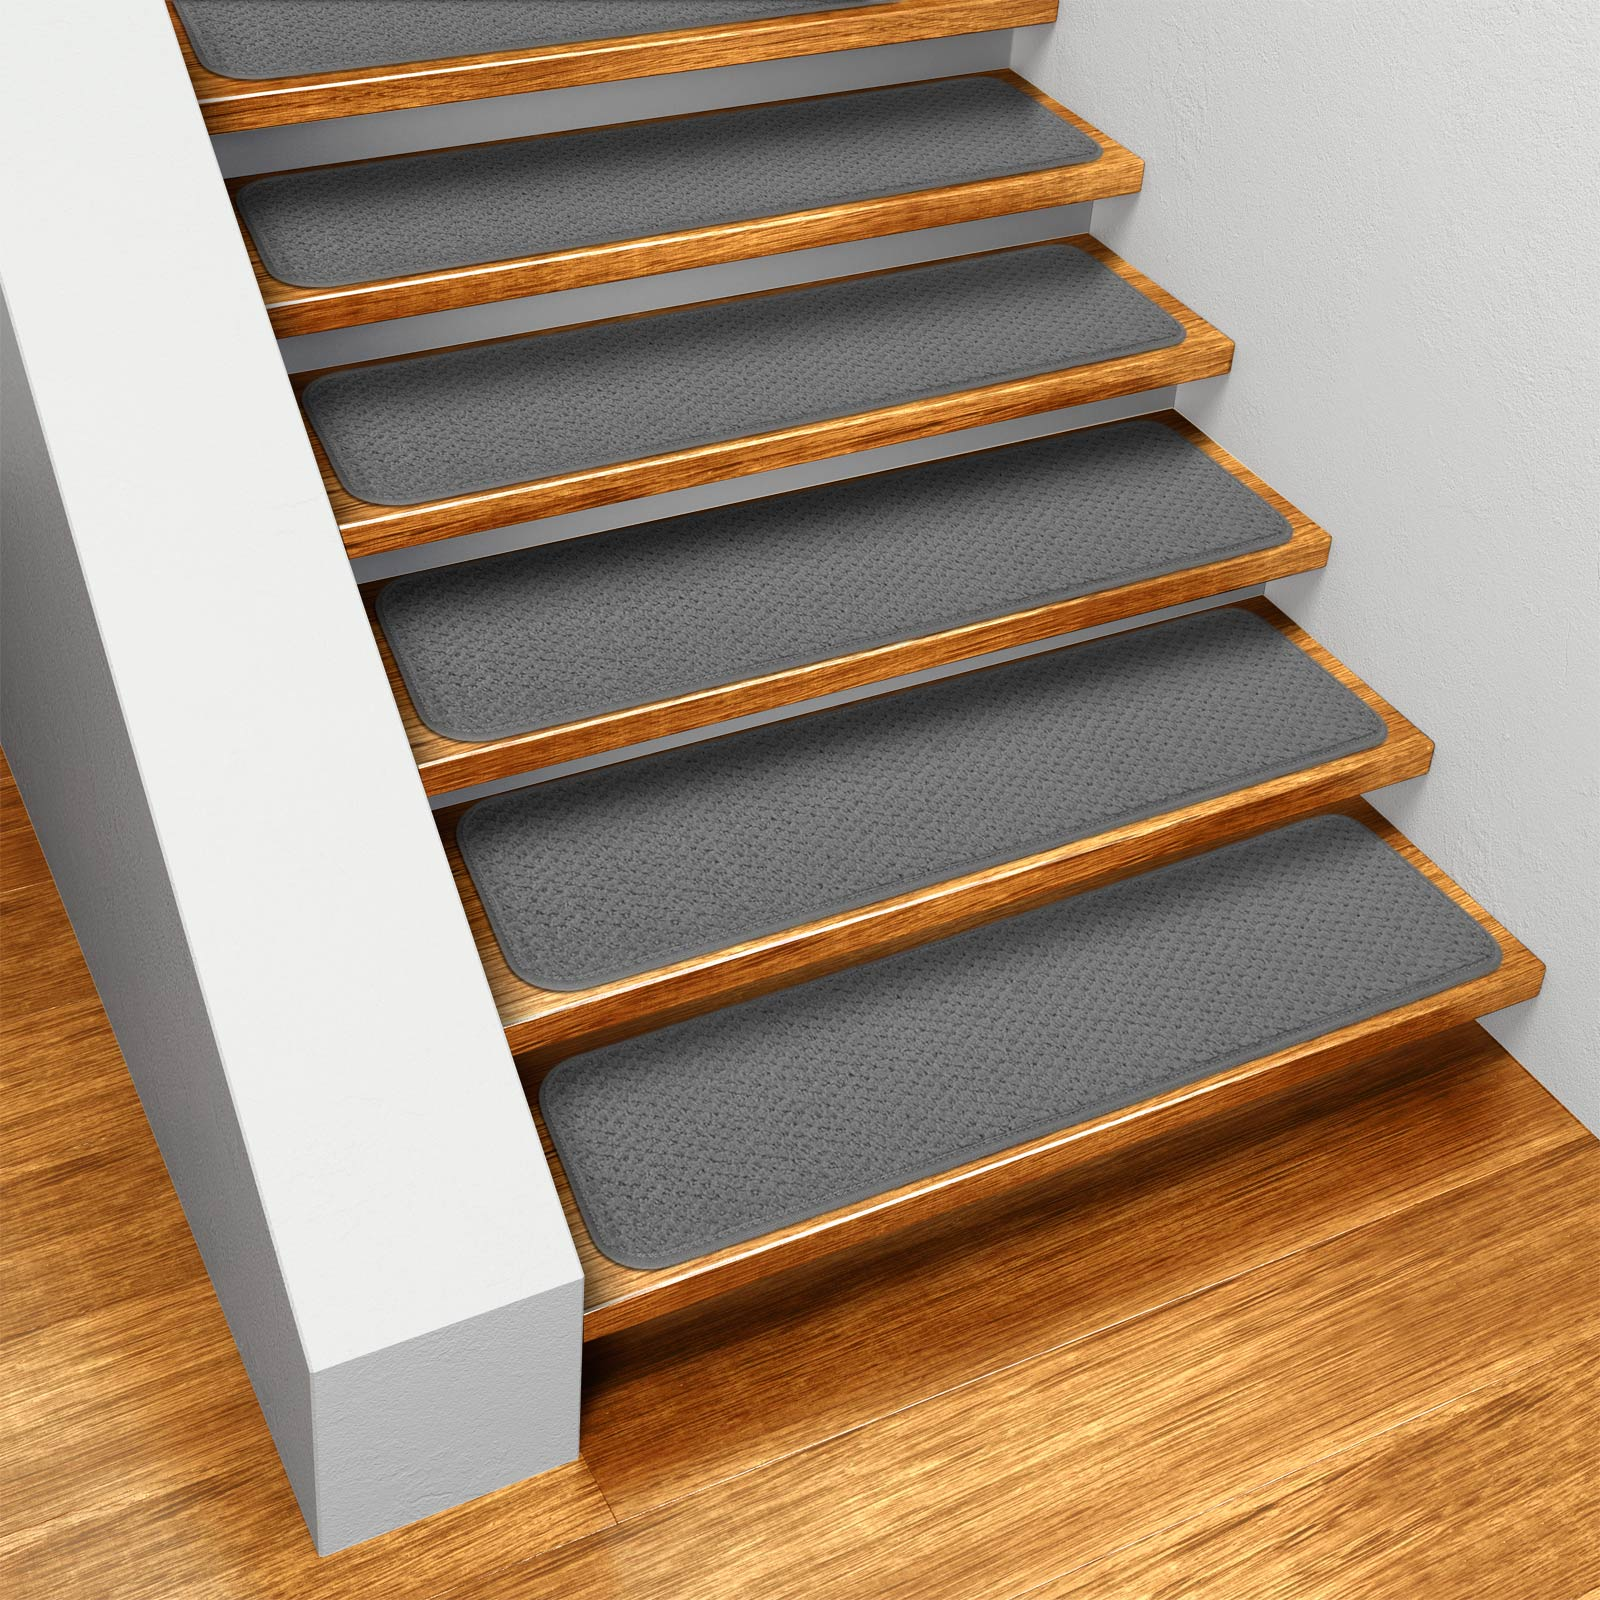 Set of 15 Skid-resistant Carpet Stair Treads - Gray - 8 In. X 23.5 In. - Several Other Sizes to Choose From